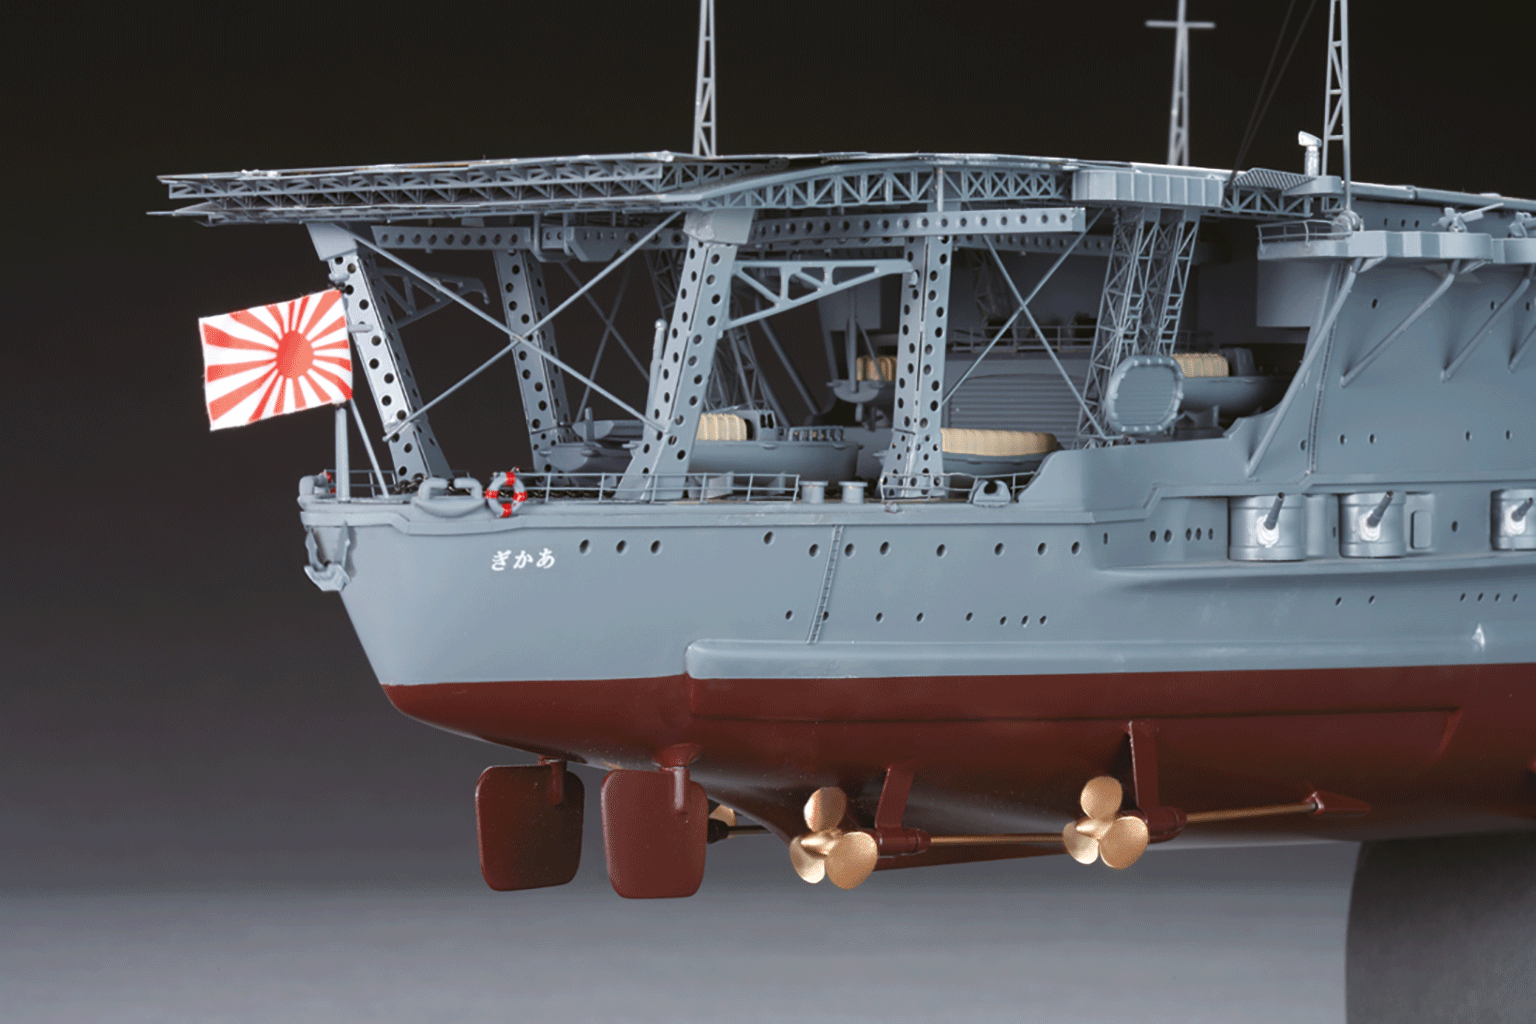 cars to build from kits with Build Ijn Akagi on Nav likewise Don Pierces Dungeon Diorama moreover Build R2 D2 also Build The R2 D2 in addition Breather Bottle.